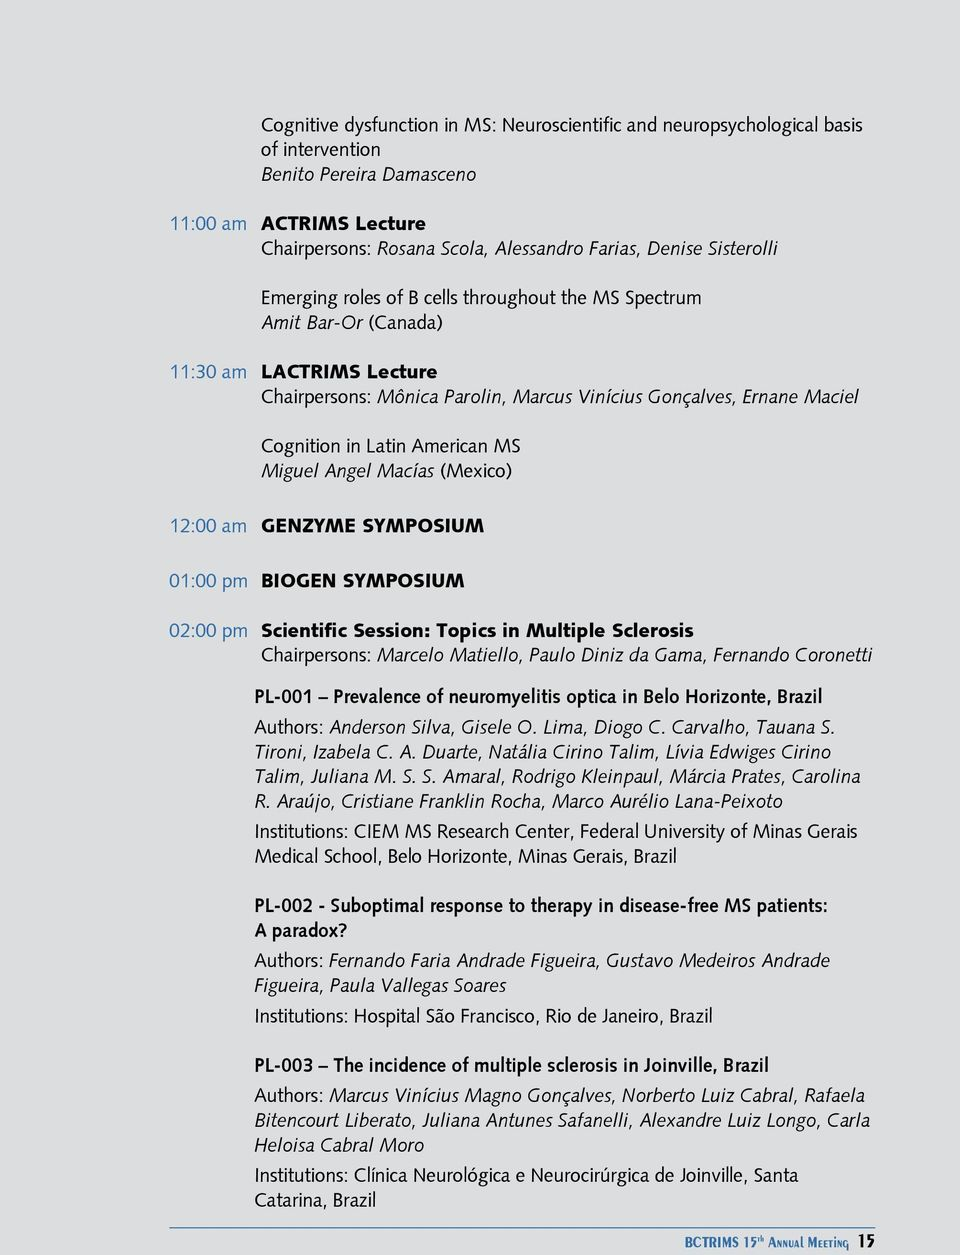 Latin American MS Miguel Angel Macías (Mexico) 12:00 am GENZYME SYMPOSIUM 01:00 pm BIOGEN SYMPOSIUM 02:00 pm Scientific Session: Topics in Multiple Sclerosis Chairpersons: Marcelo Matiello, Paulo